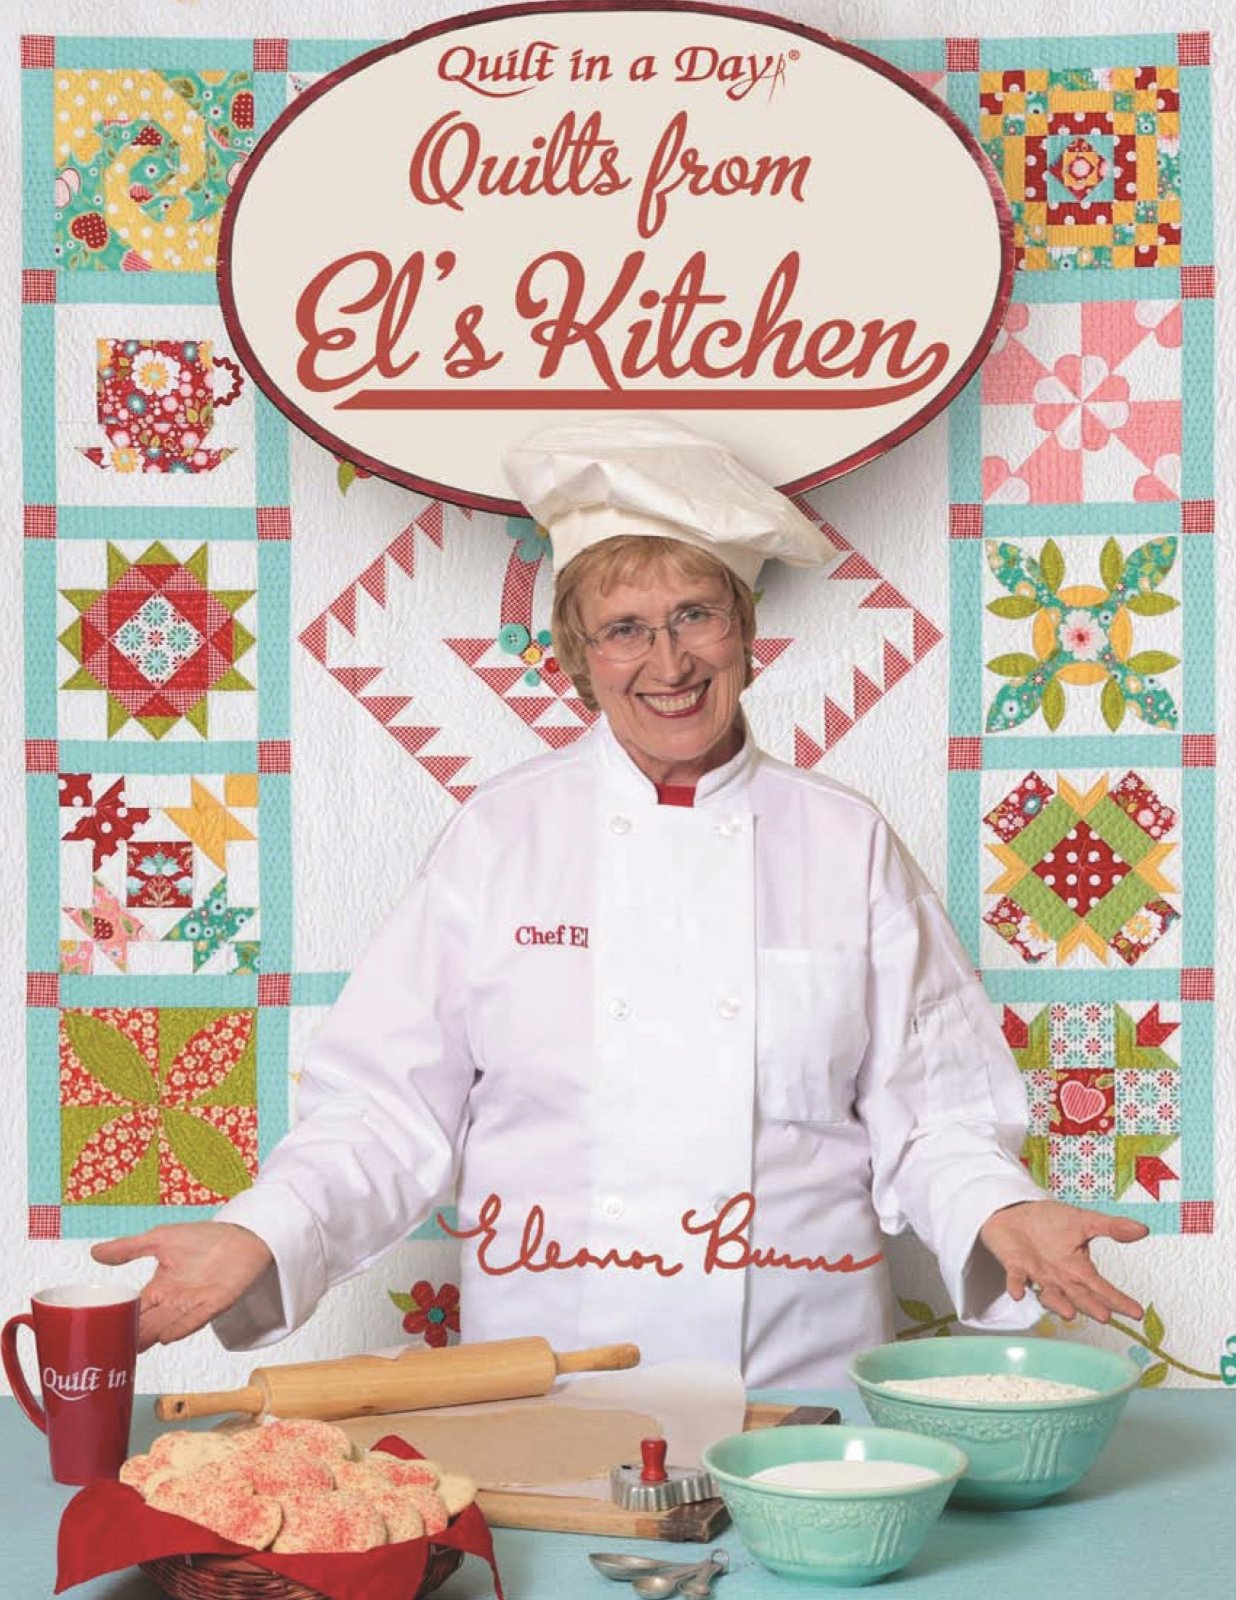 *QUILTS FROM EL'S KITCHEN BOOK//ELEANOR BURNS//QUILT IN A DAY